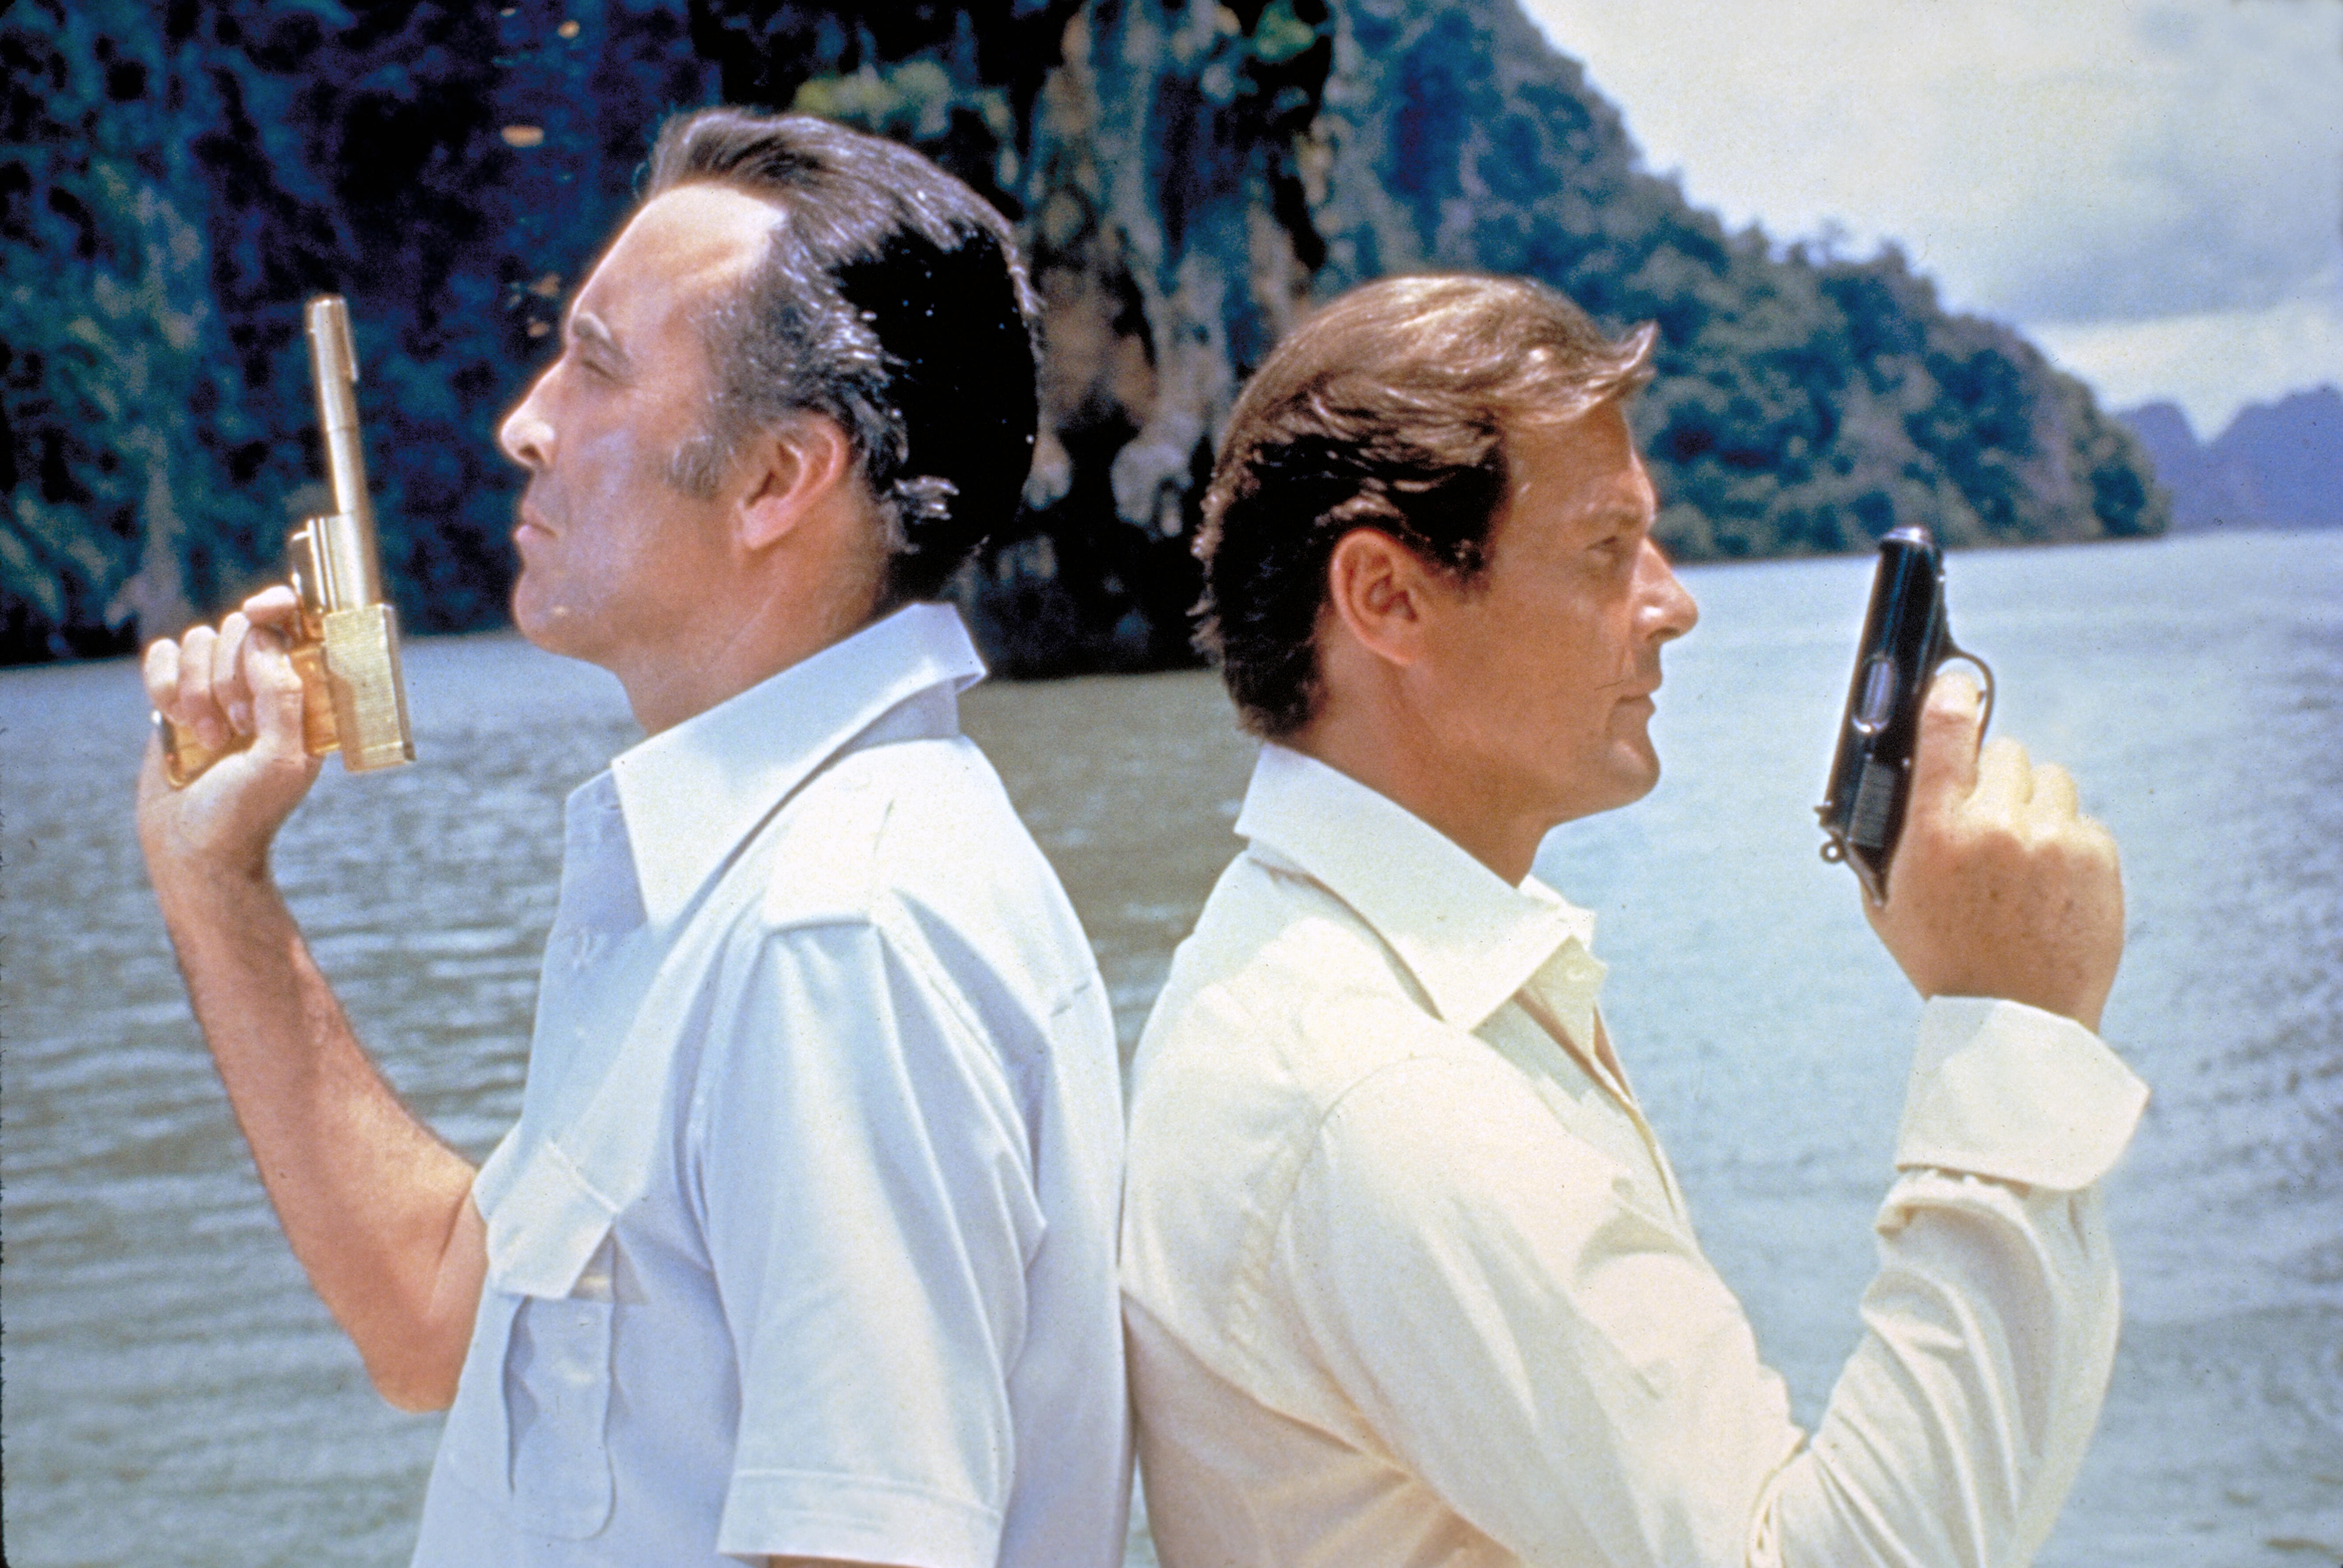 Scaramanga and James Bond in The Man With the Golden Gun